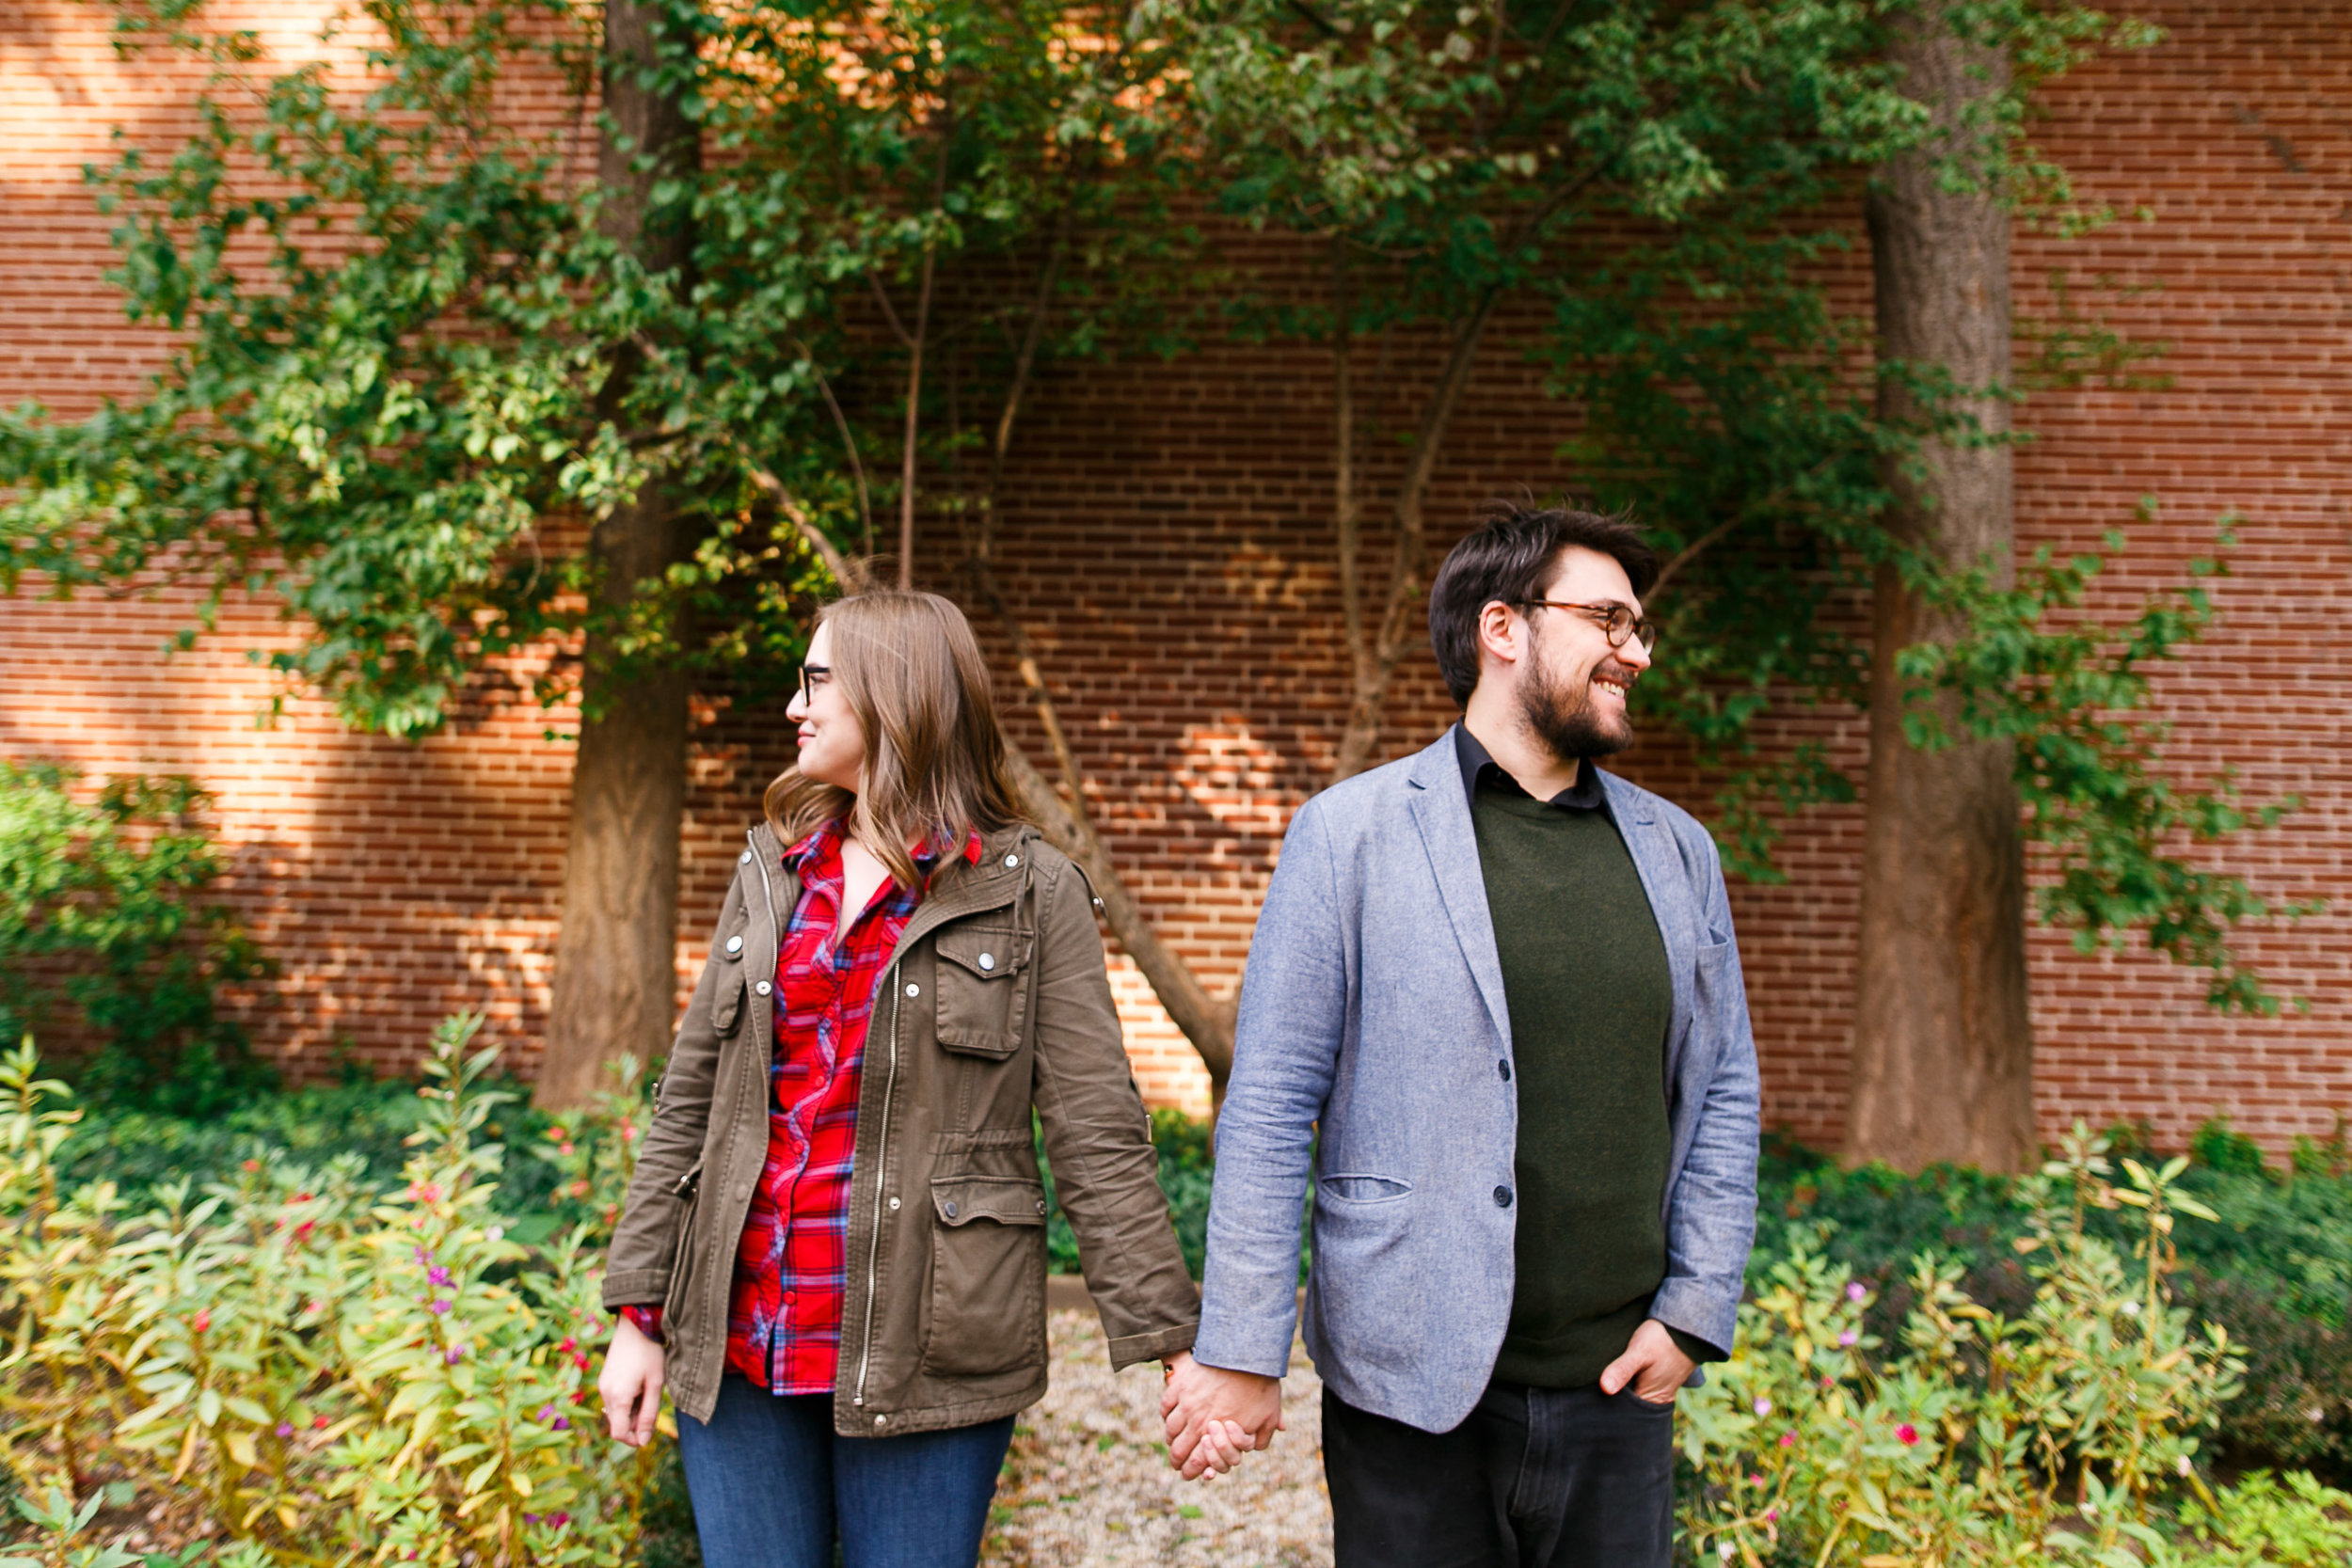 Old City Philadelphia Fall Engagement Session by Swiger Photography Ala and Roy2.jpg